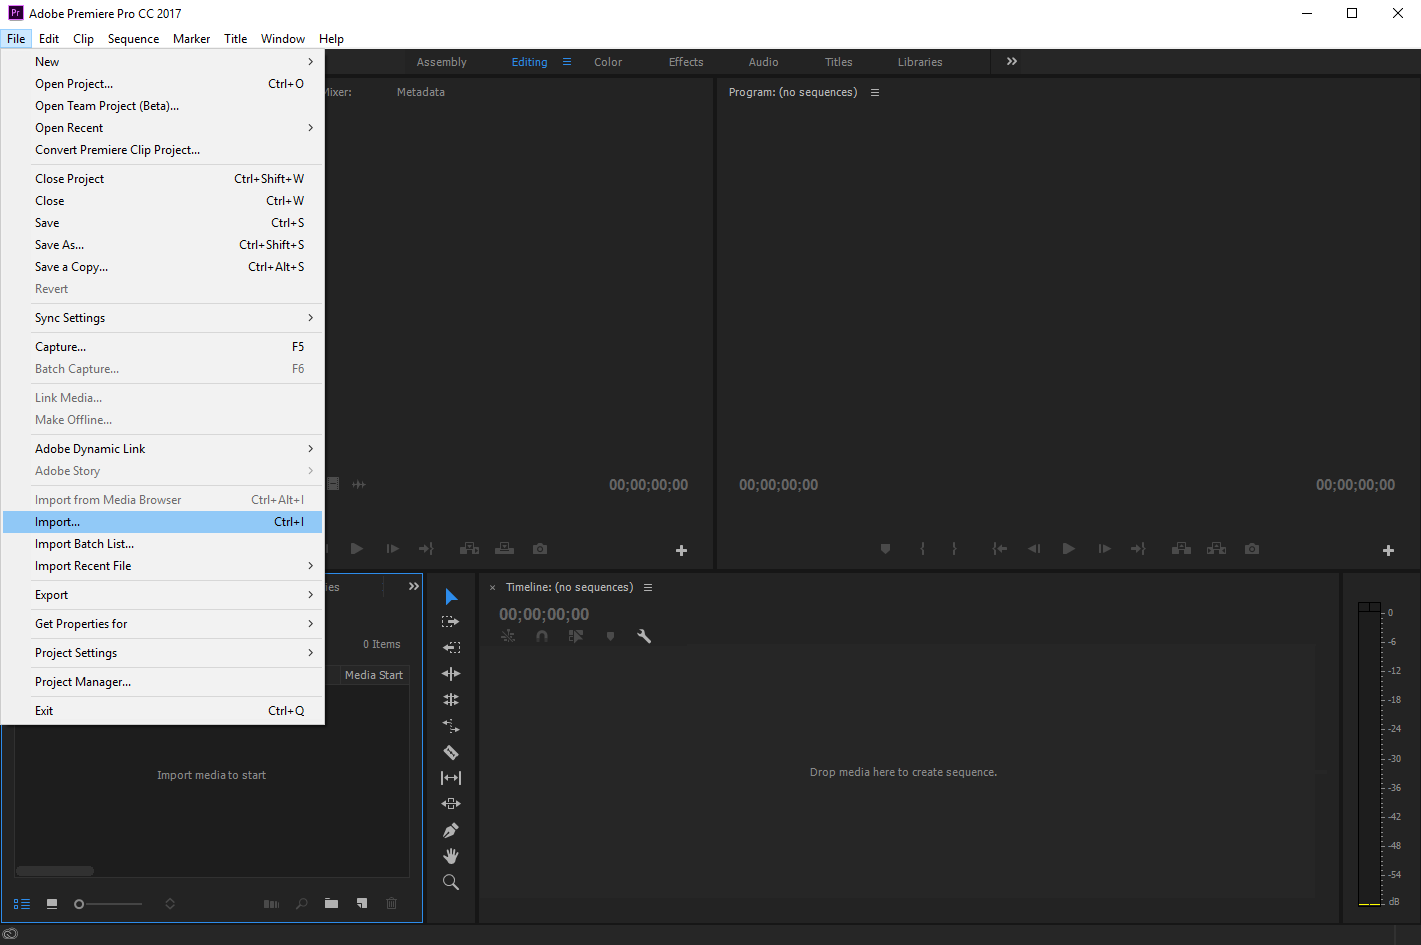 Adobe Premiere Pro: export from Simon Says and import